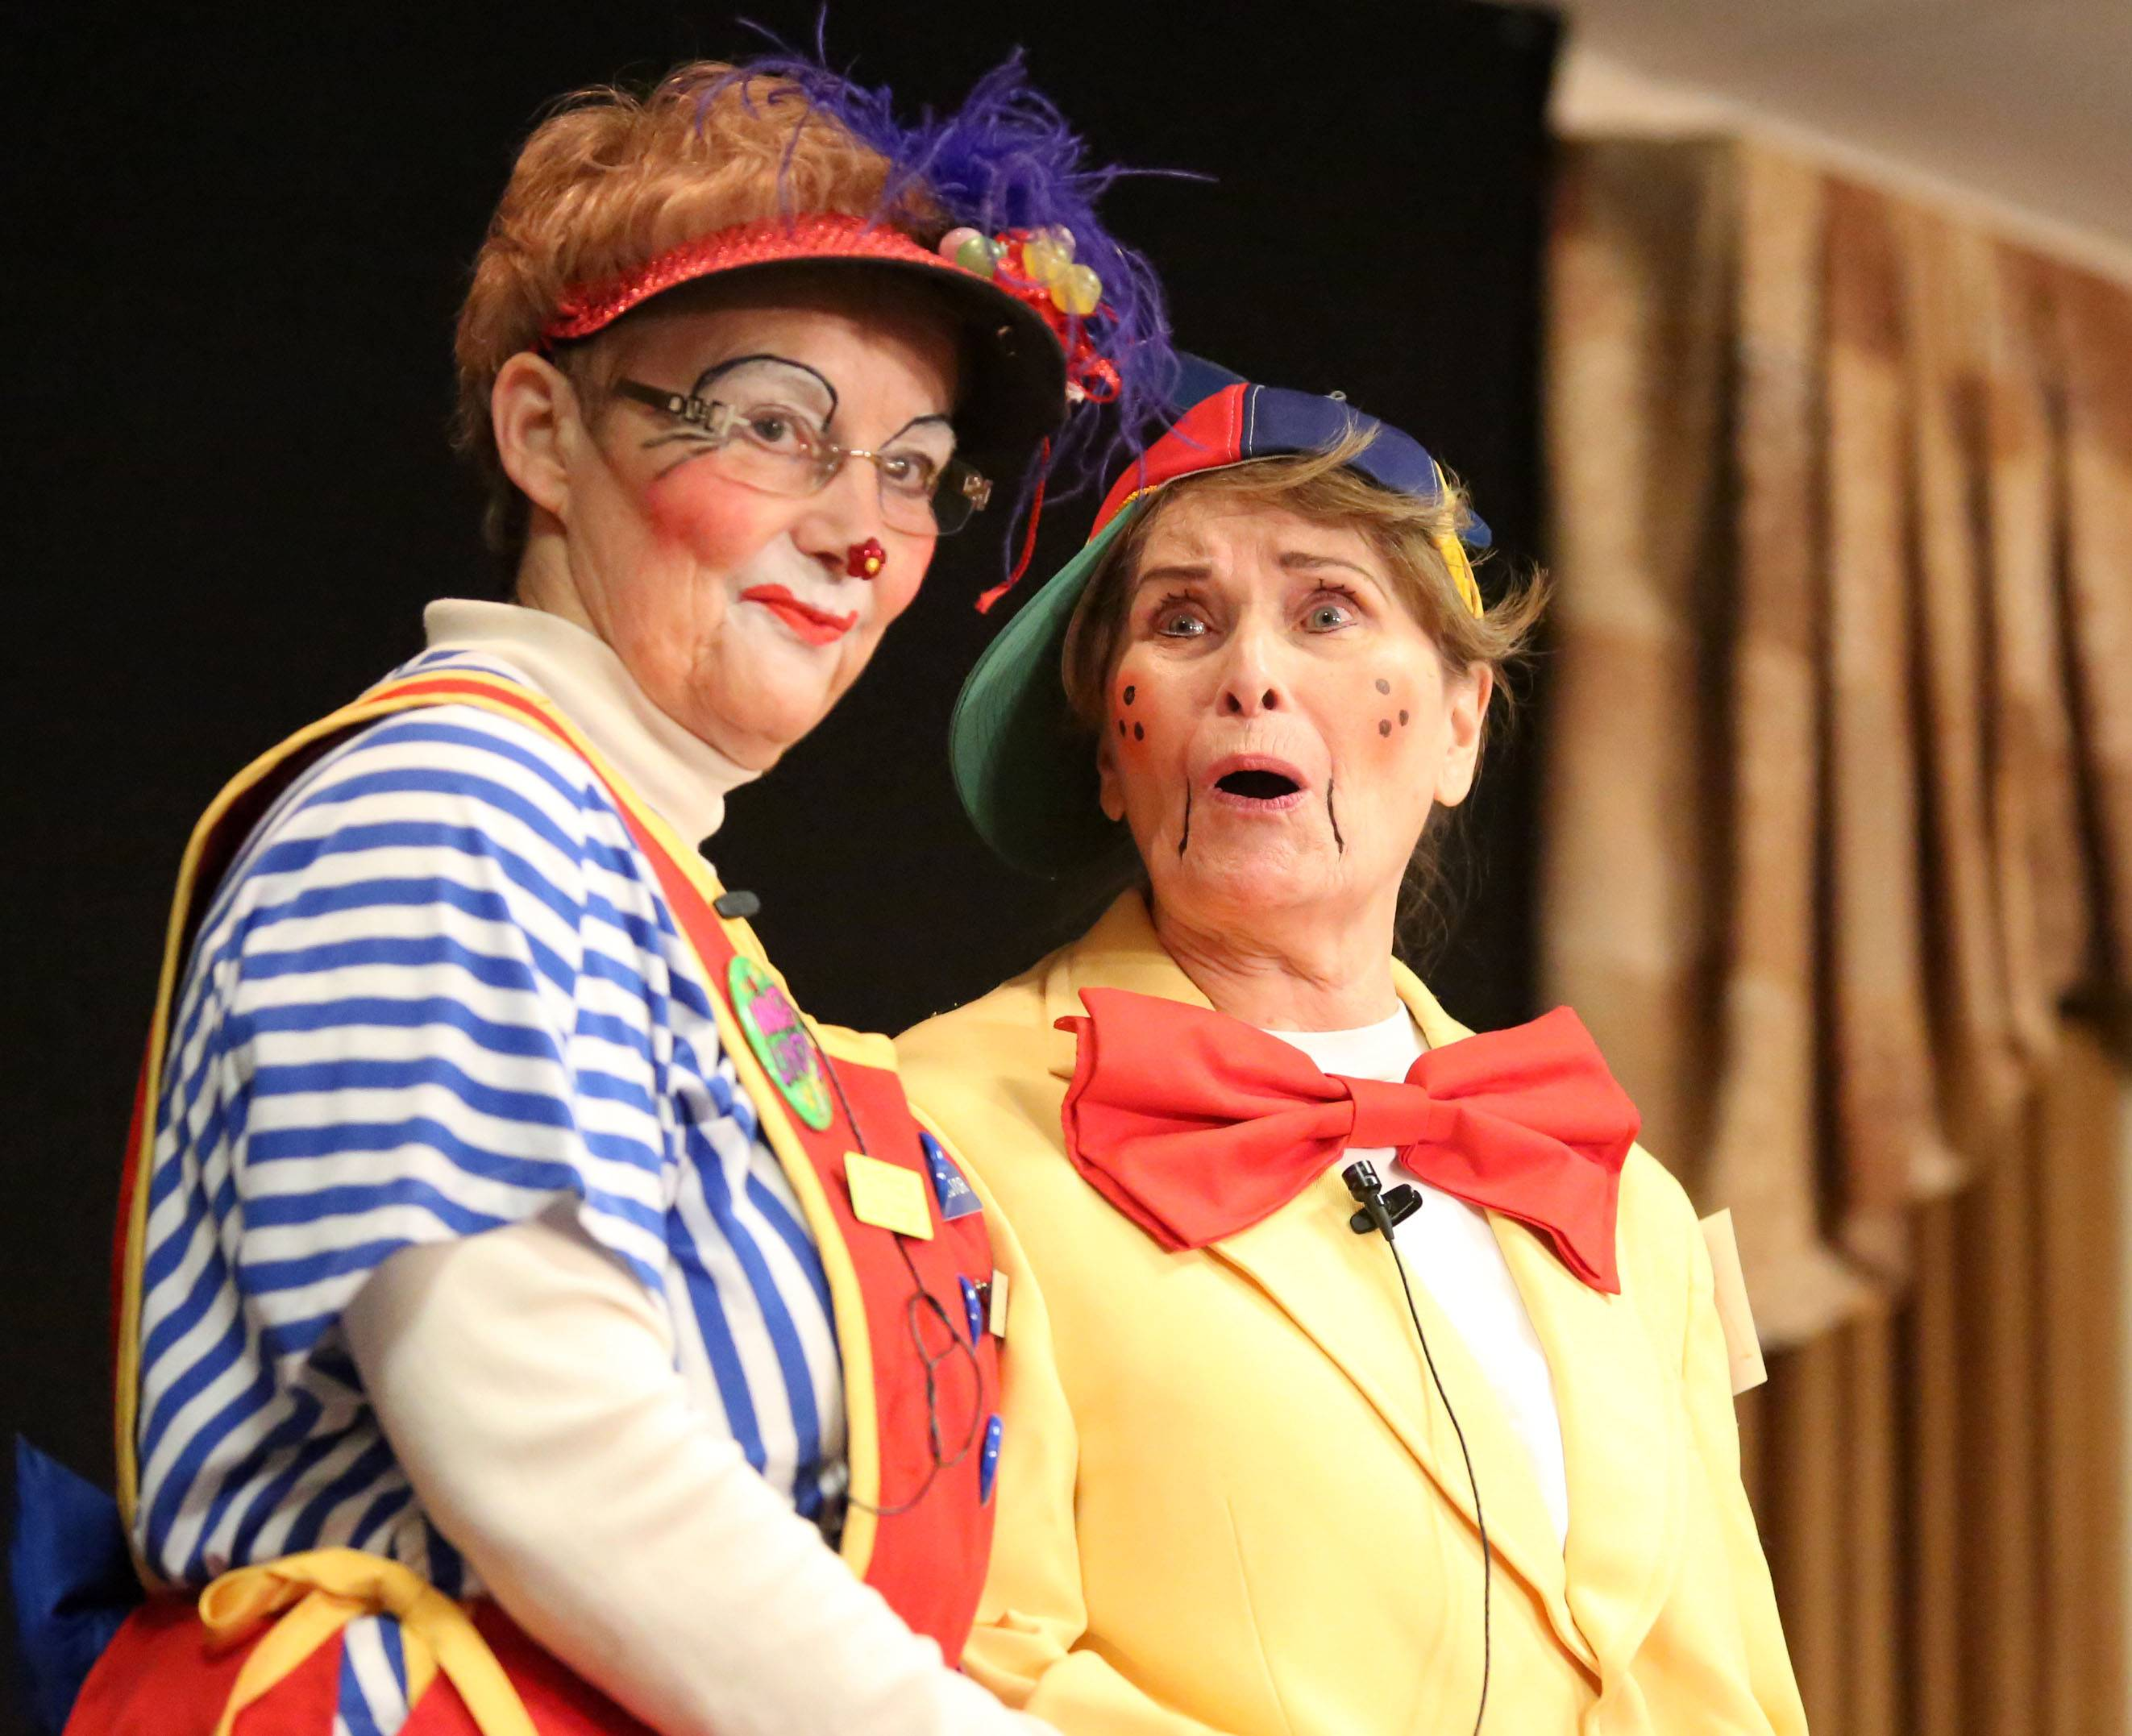 Jill Lindsay as Windy Lindy and her stage partner, Jackie Krueger, right, both of Milwaukee, perform at the World Clown Association's annual convention Thursday.